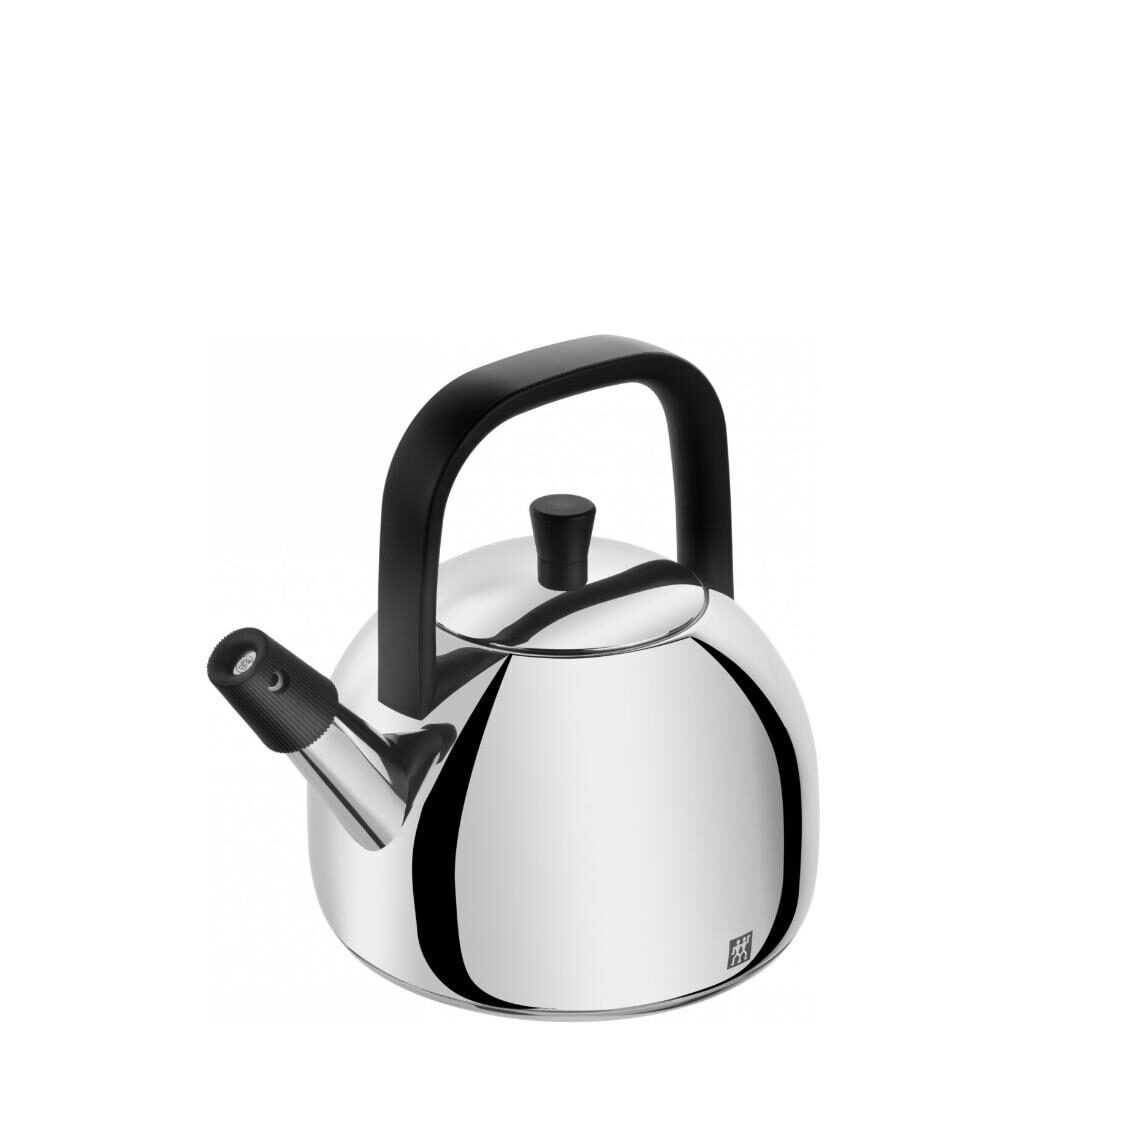 Zwilling Plus Stainless Steel 16L Whistling Kettle Round 40995-001